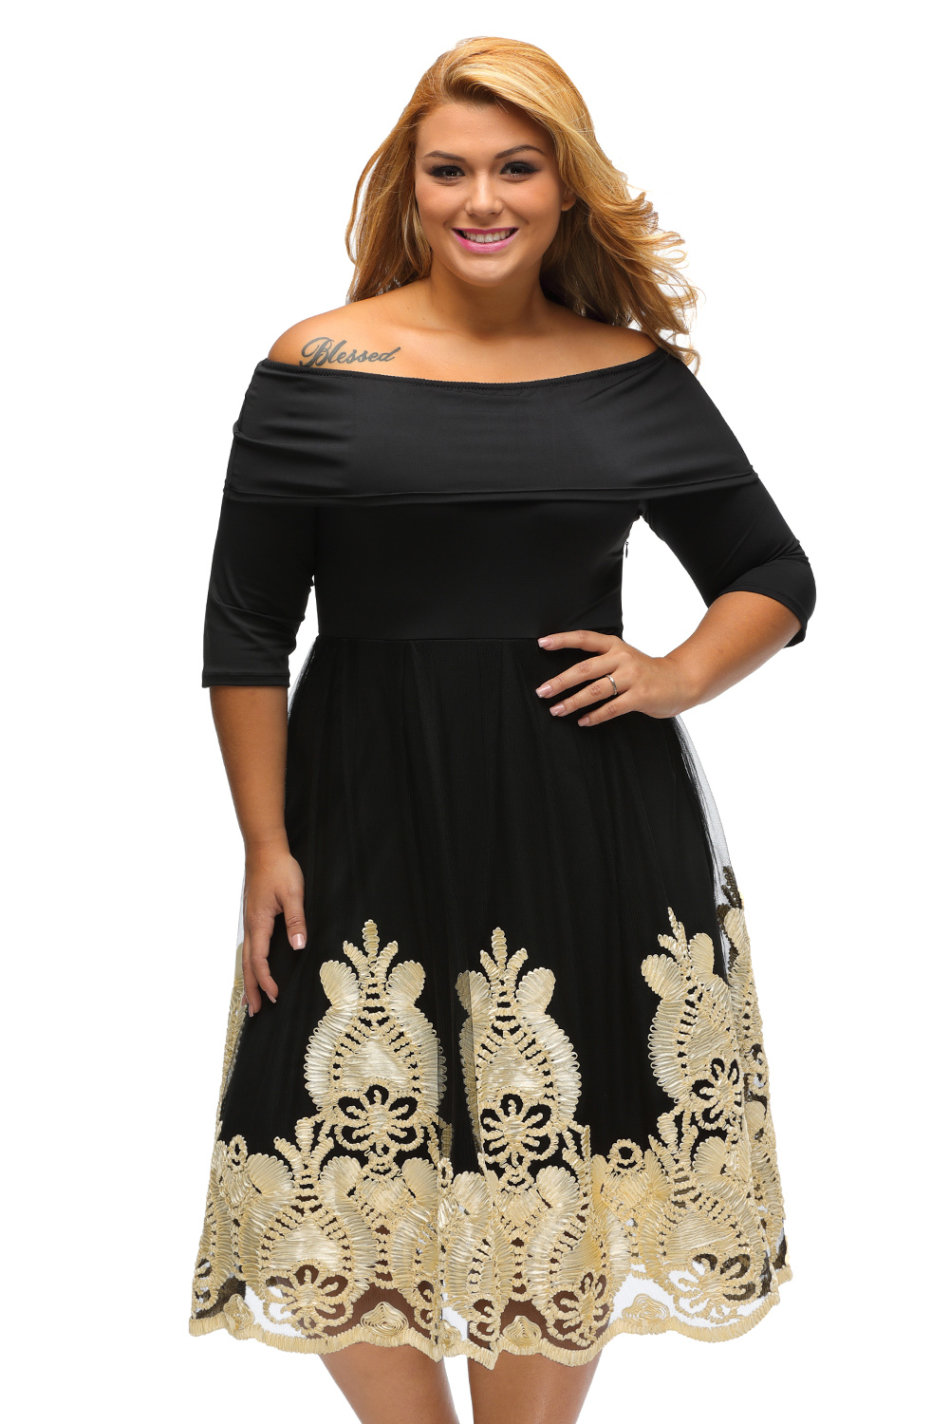 25a33cb9383 Black And Gold Plus Size Prom Dresses - Gomes Weine AG